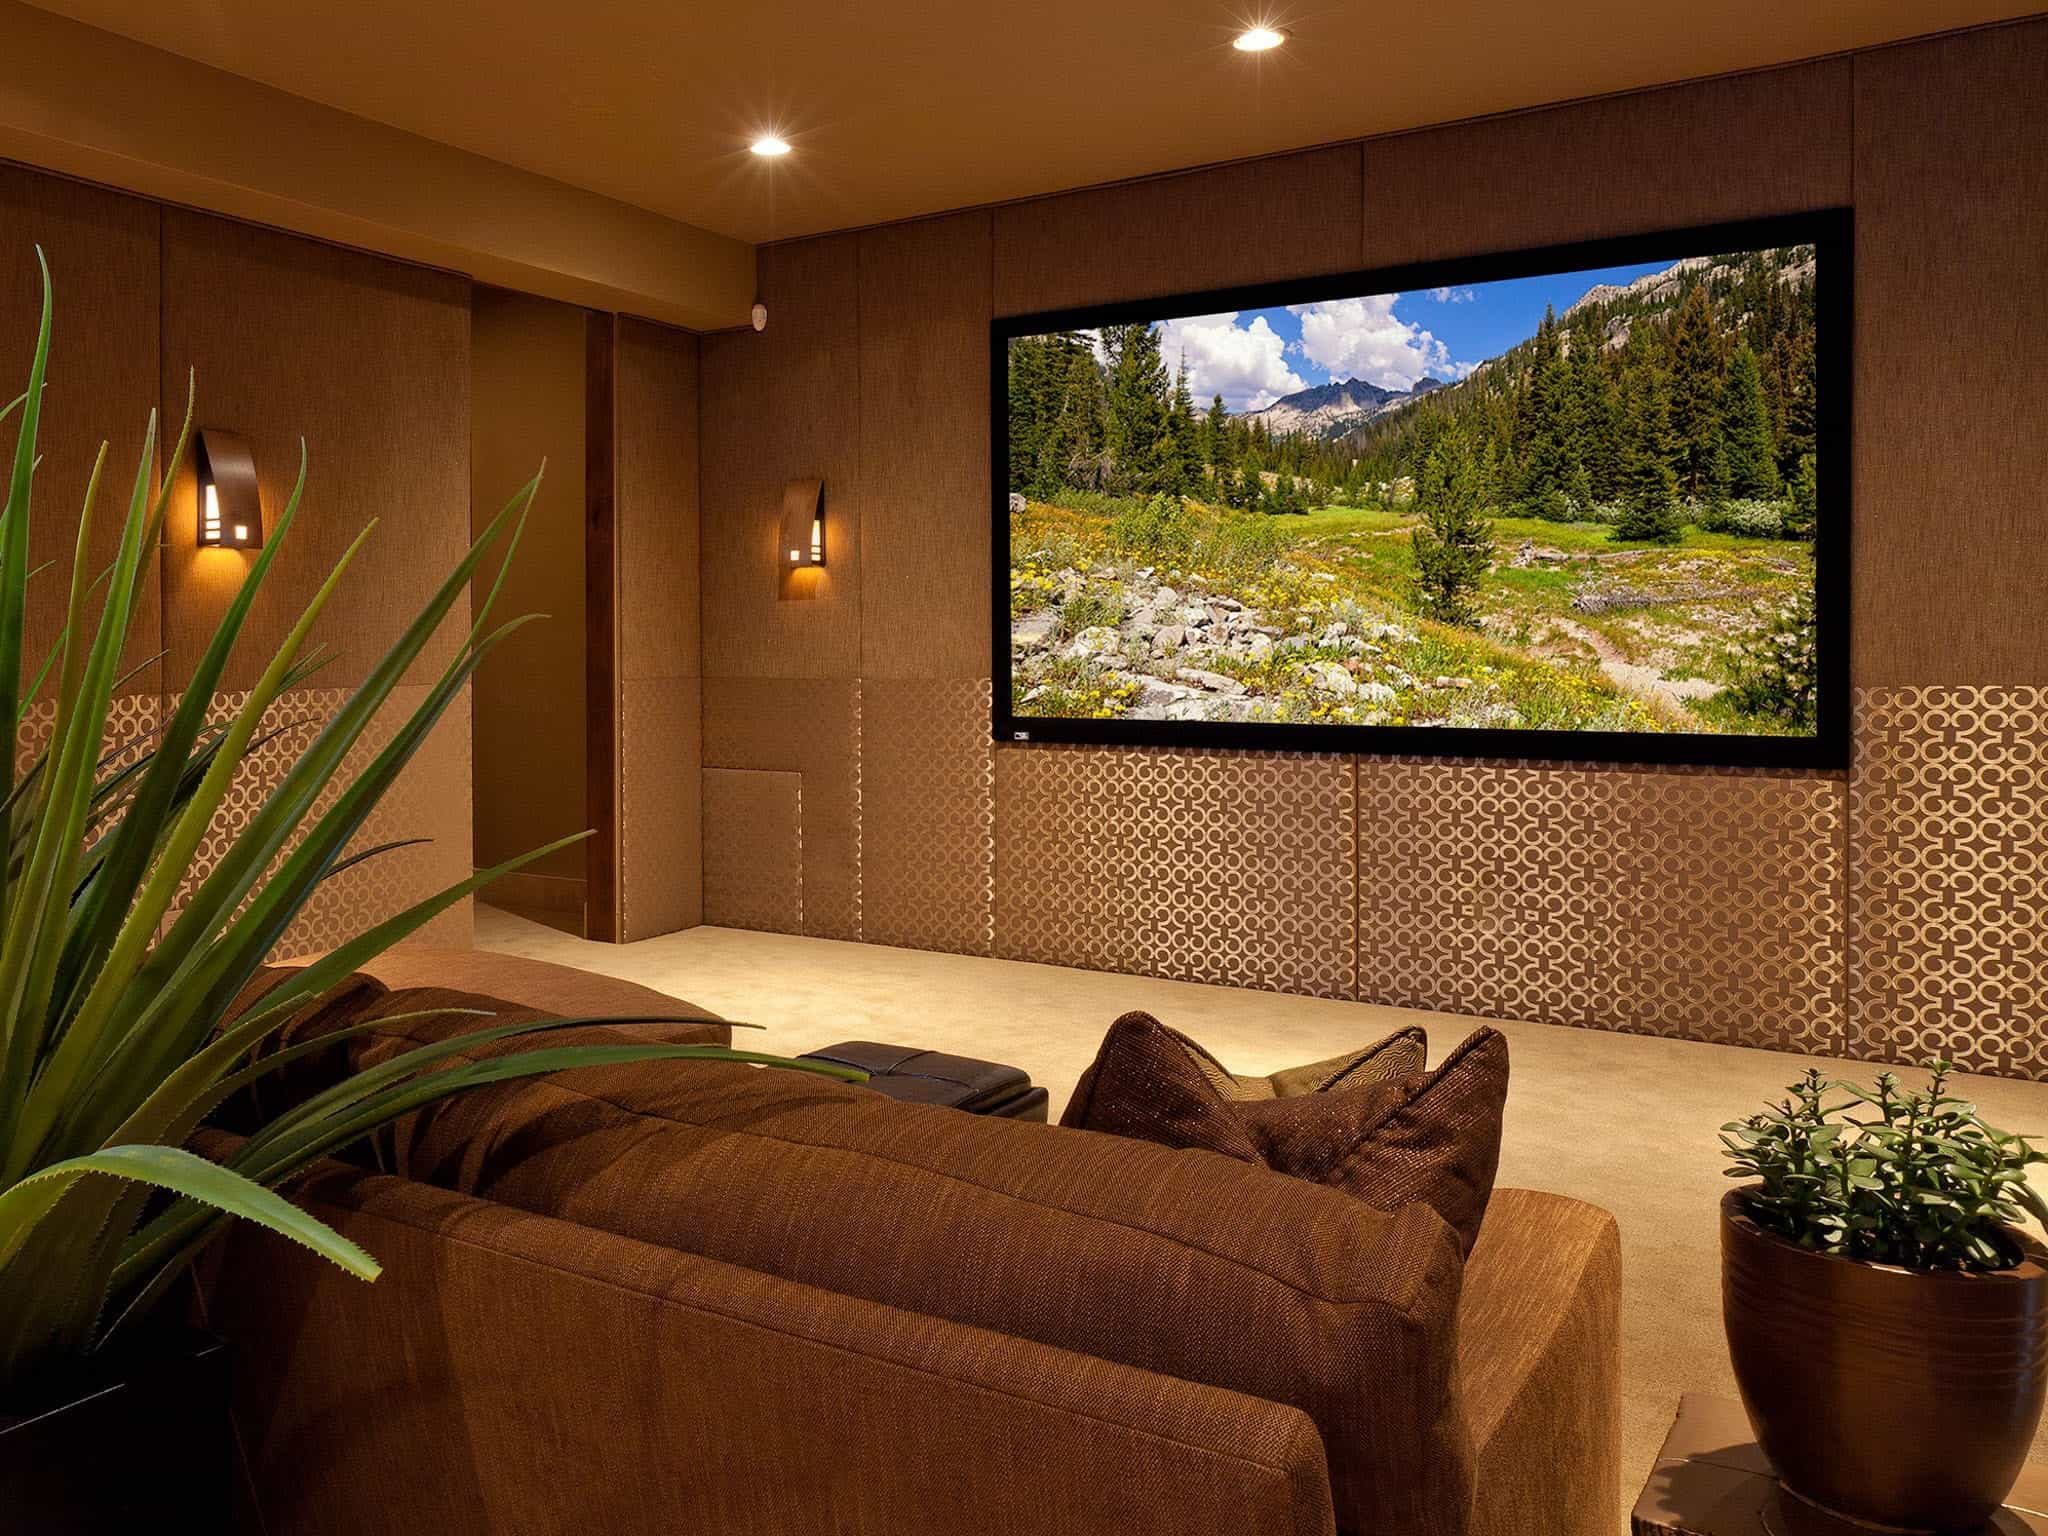 Brown And Gold Contemporary Media Room Cozy Design (View 20 of 21)